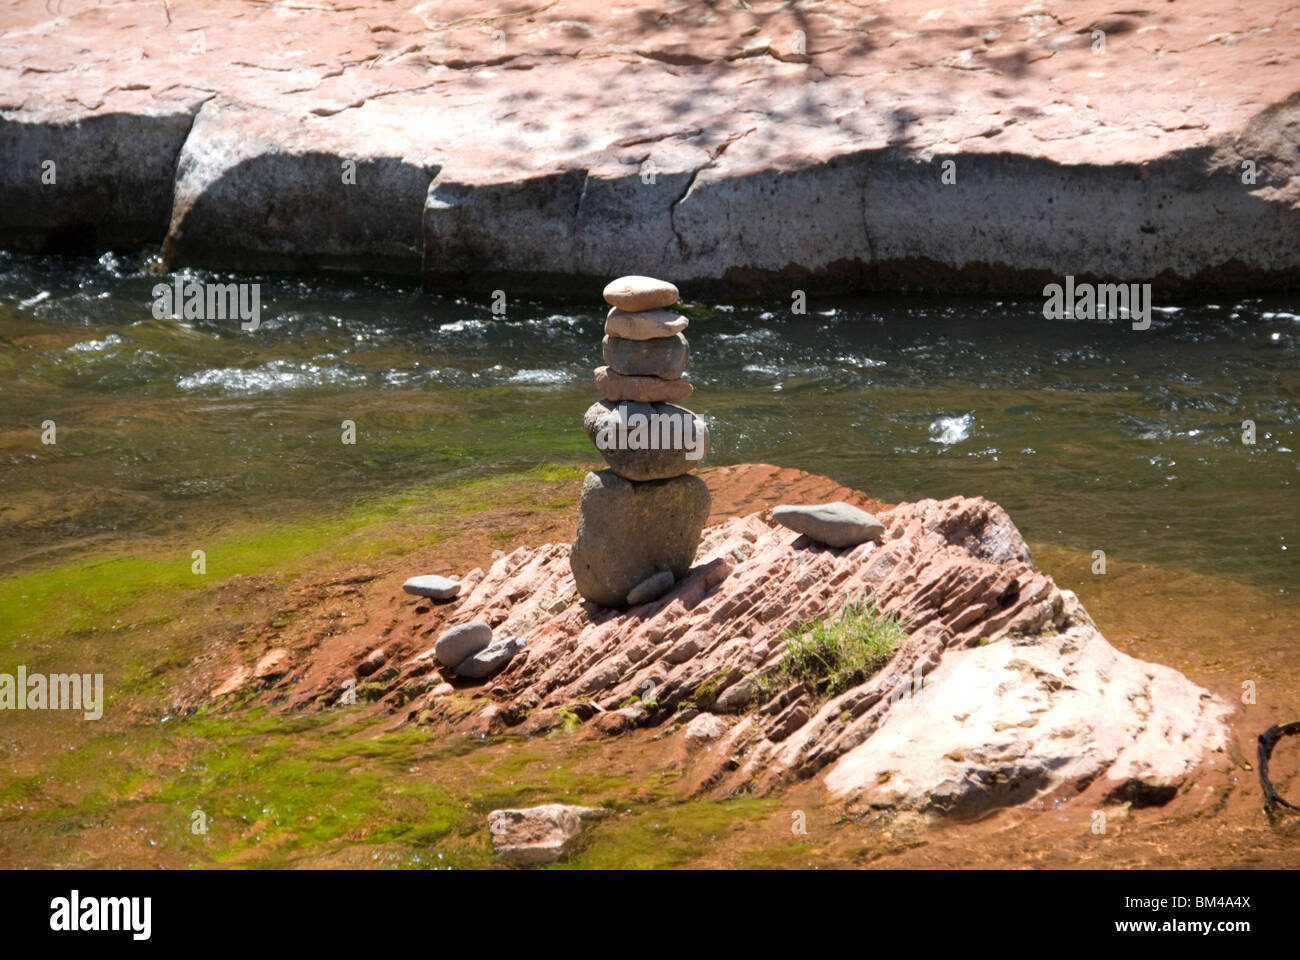 Pebbles arranged as standing stone sculptures at Oak Creek River in Red Rock State Park just outside Sedona Arizona Stock Photo